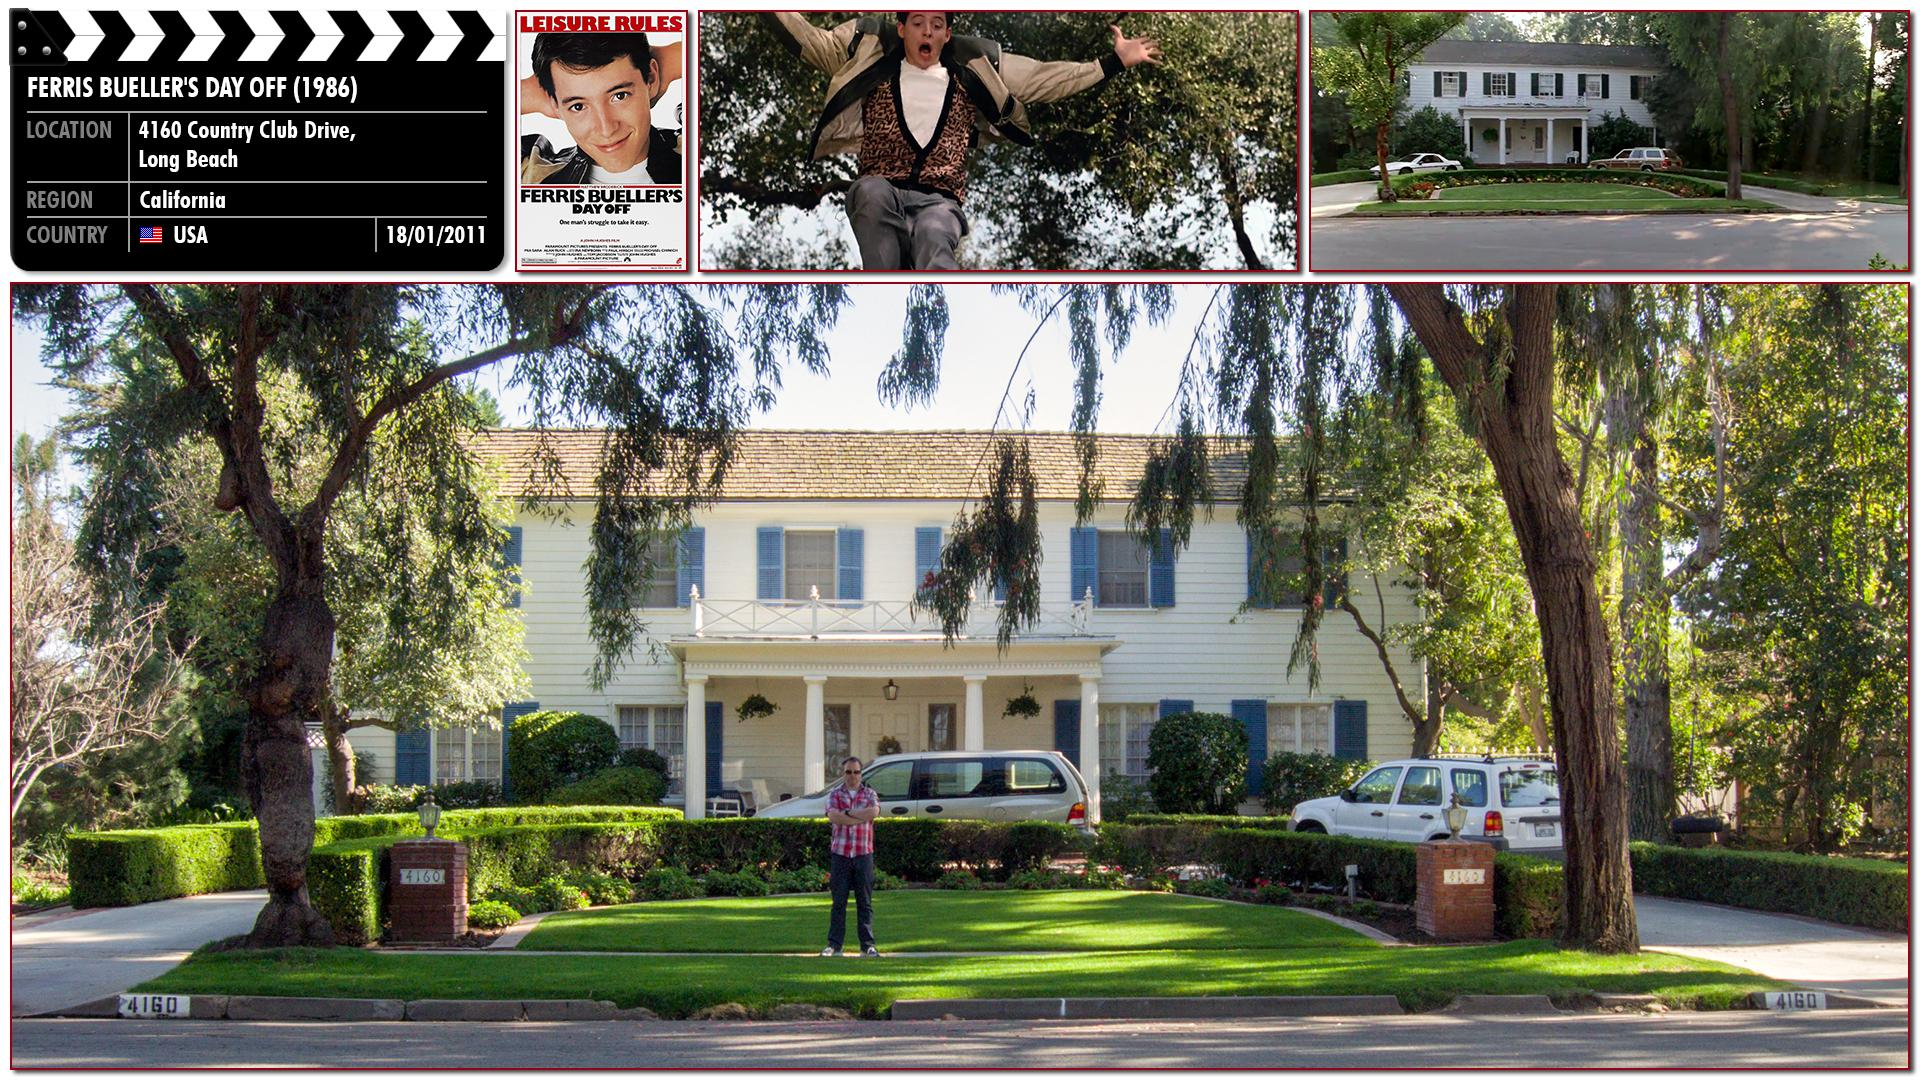 Filming location photo for Ferris Bueller's Day Off (1986) 1 of 1